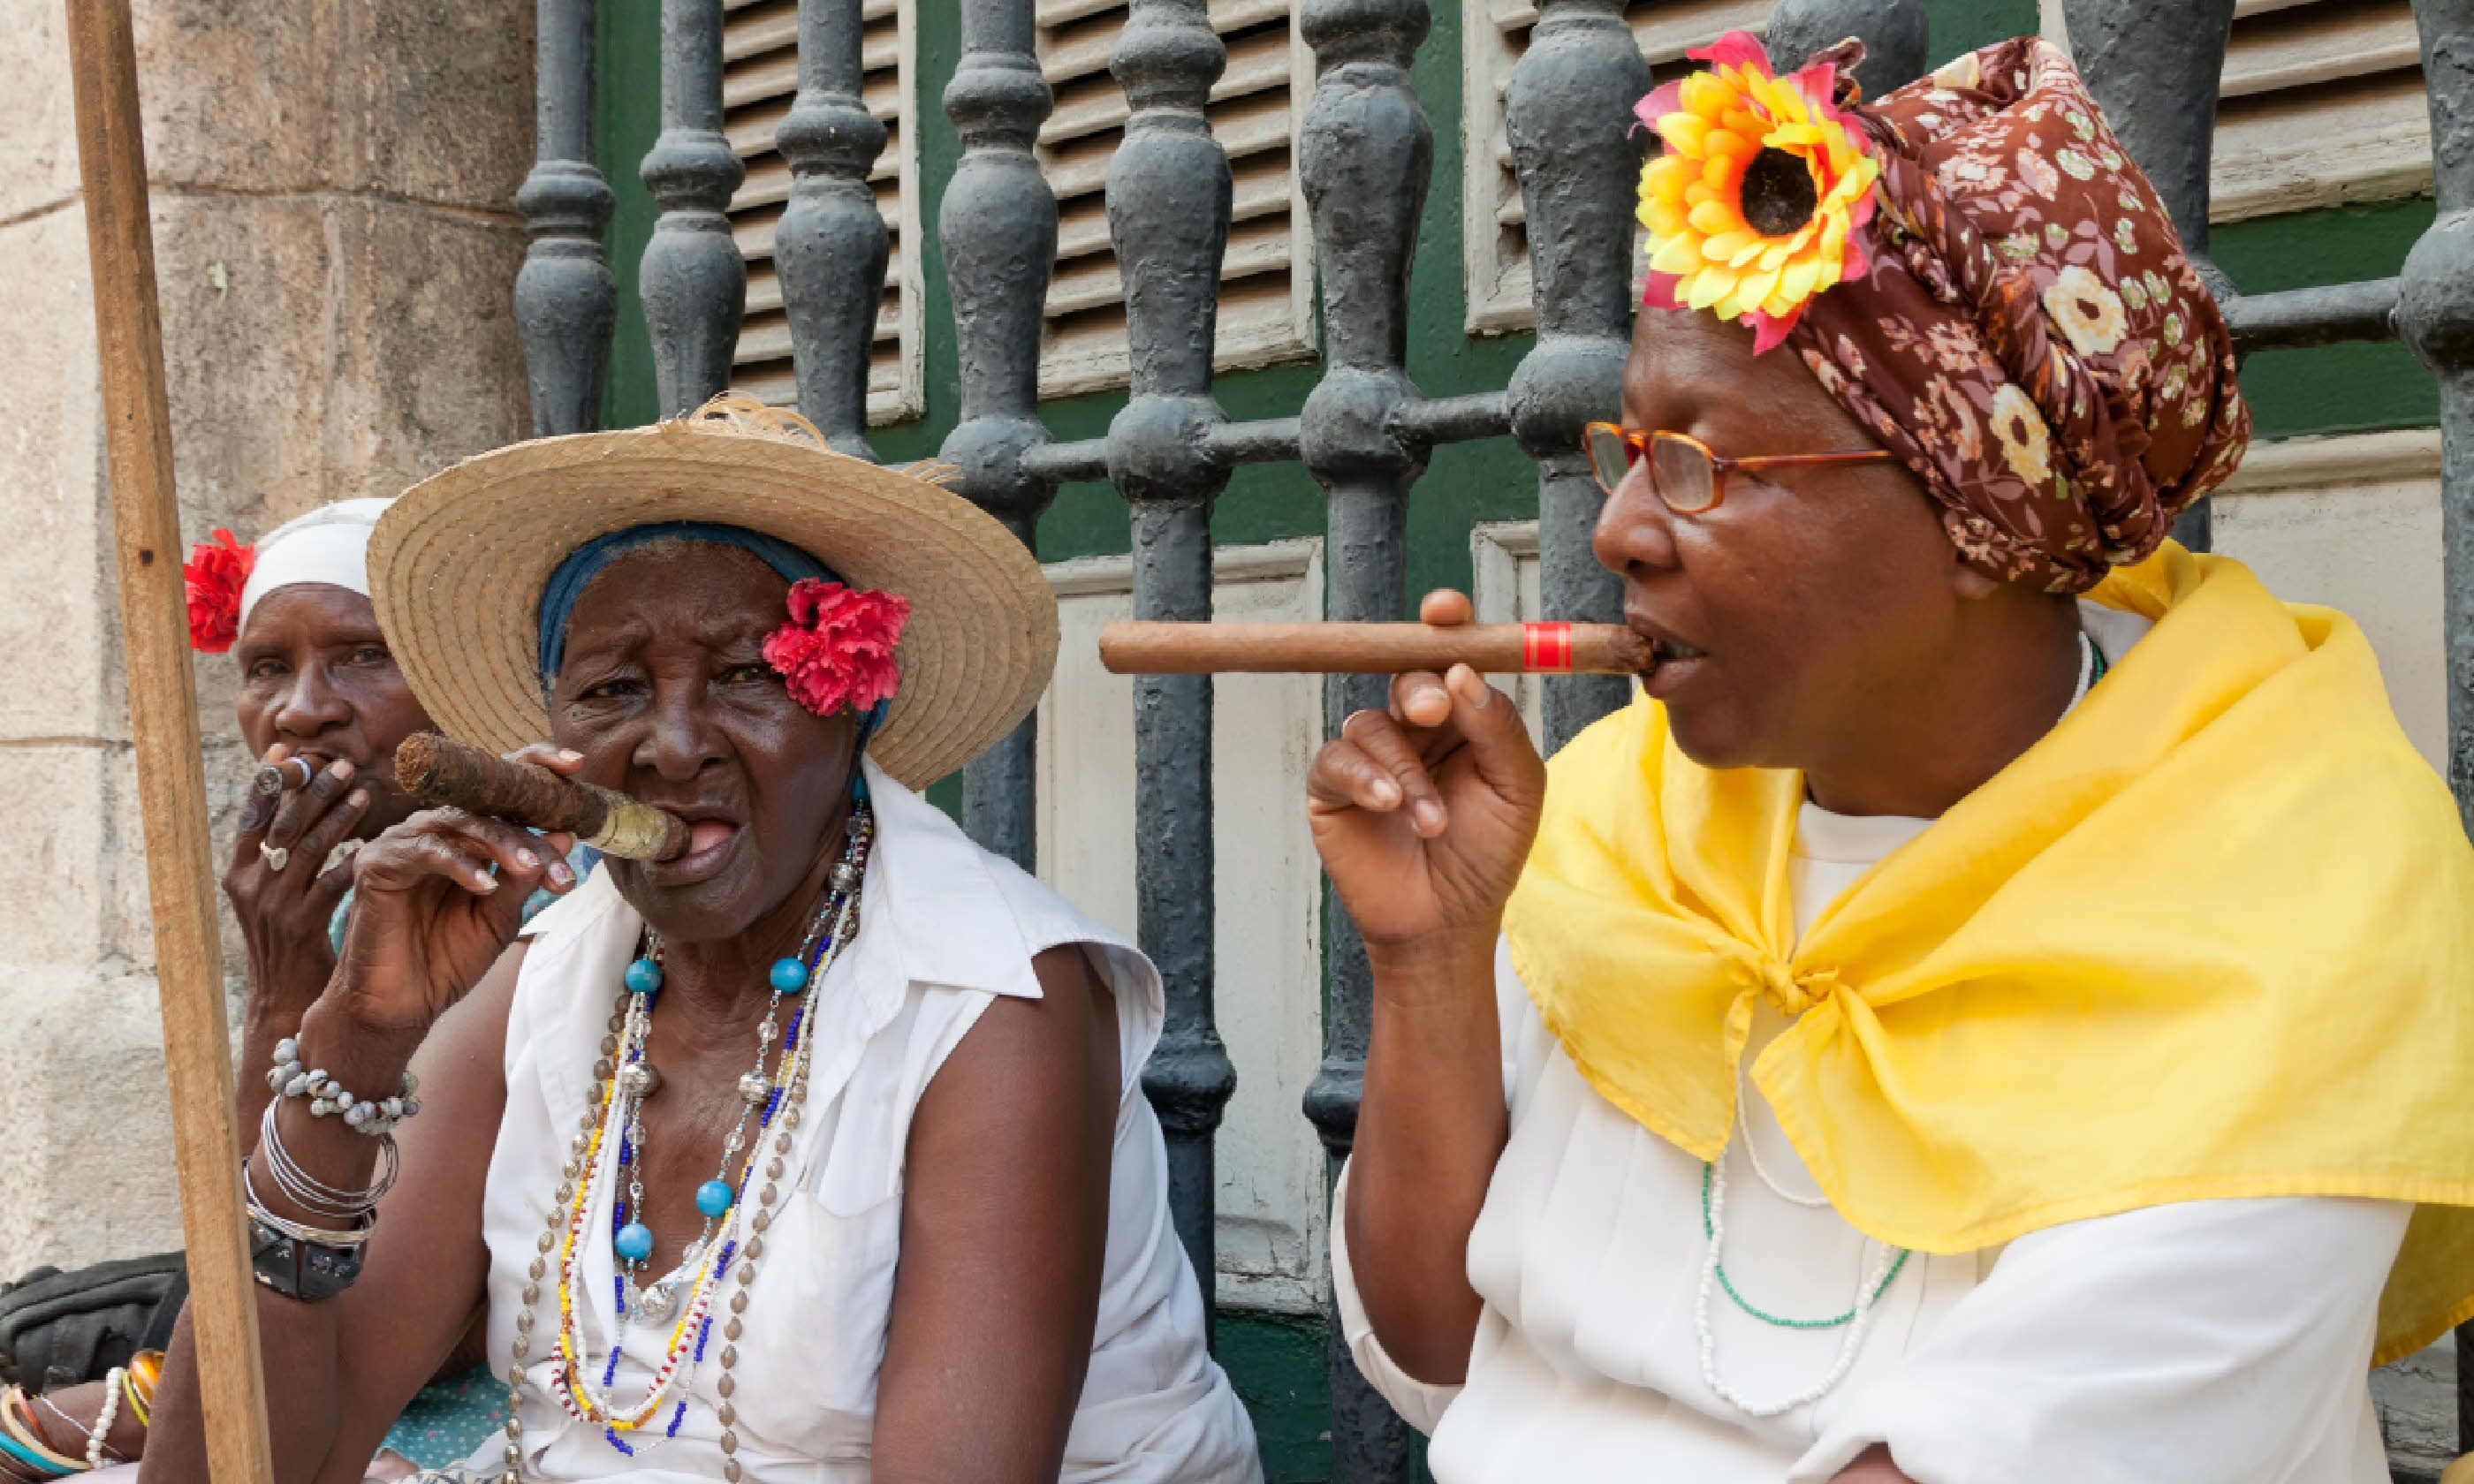 Old ladies with Cuban cigars: soon to be a thing of the past? (Shutterstock)